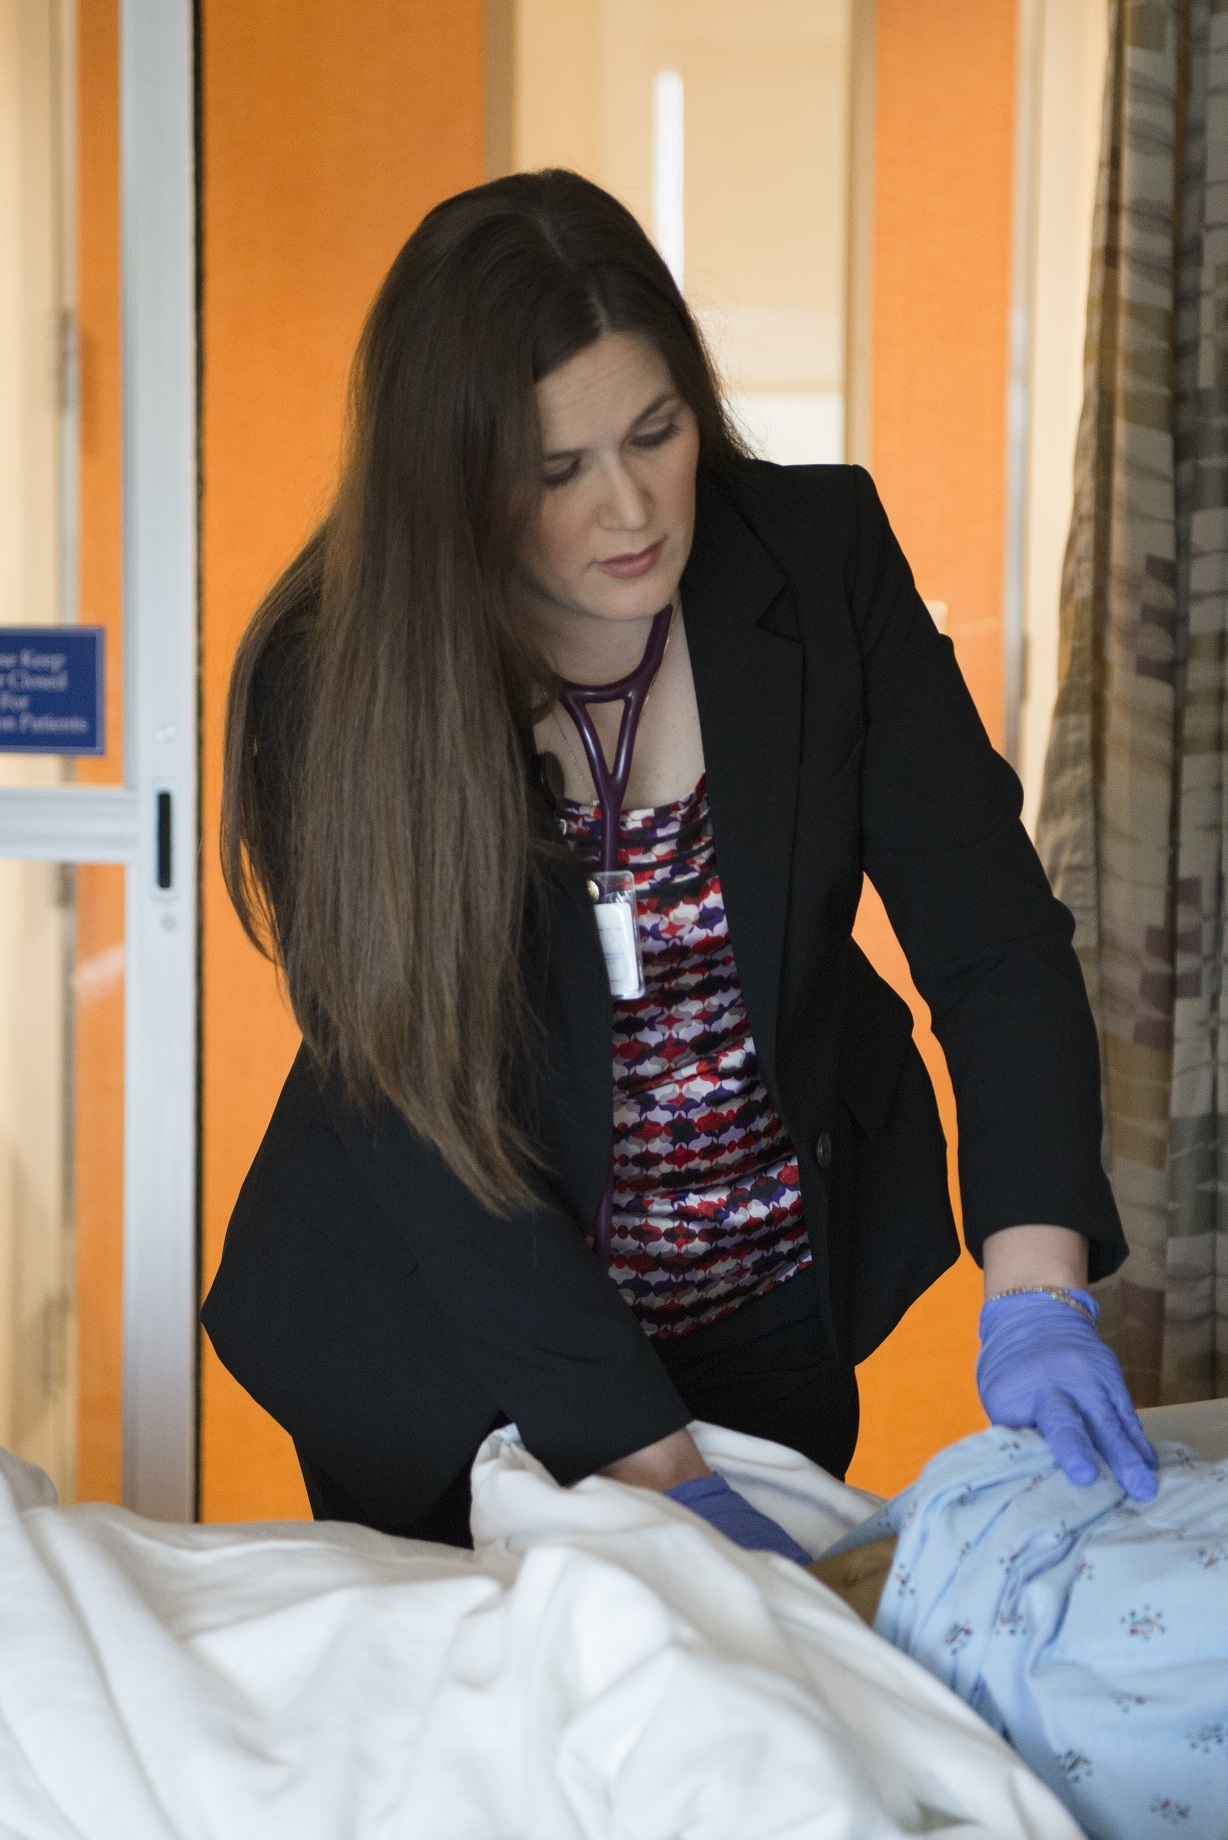 AANP Fellow Amanda Chaney wears blue gloves and examines a patient's abdominal area